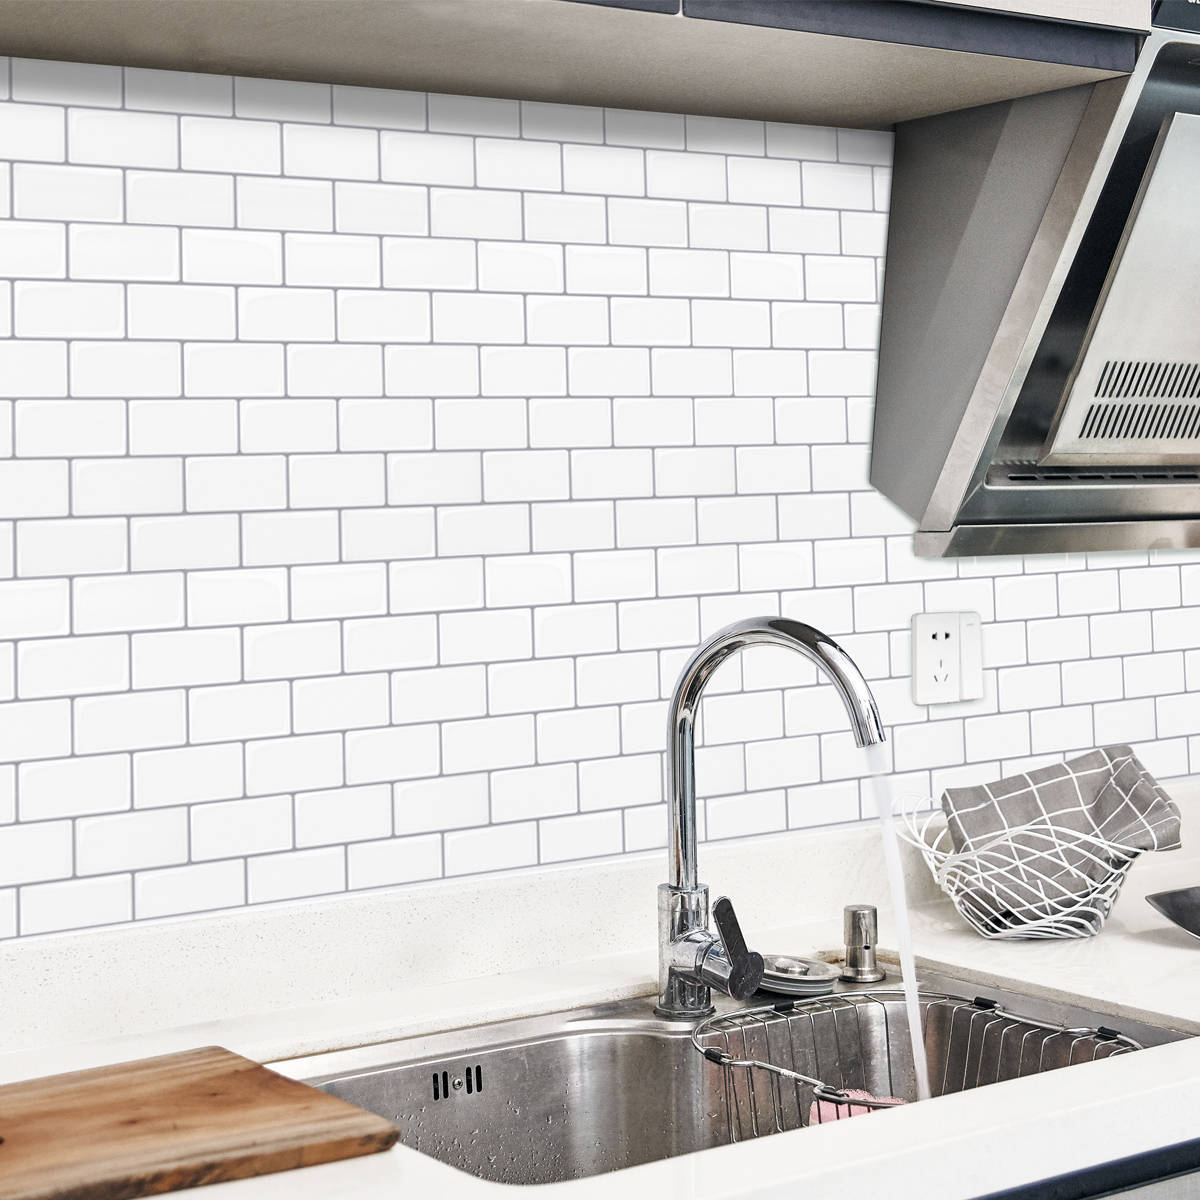 Peel-and-stick tiles come is many color and style options. This subway tile looks so much like ...